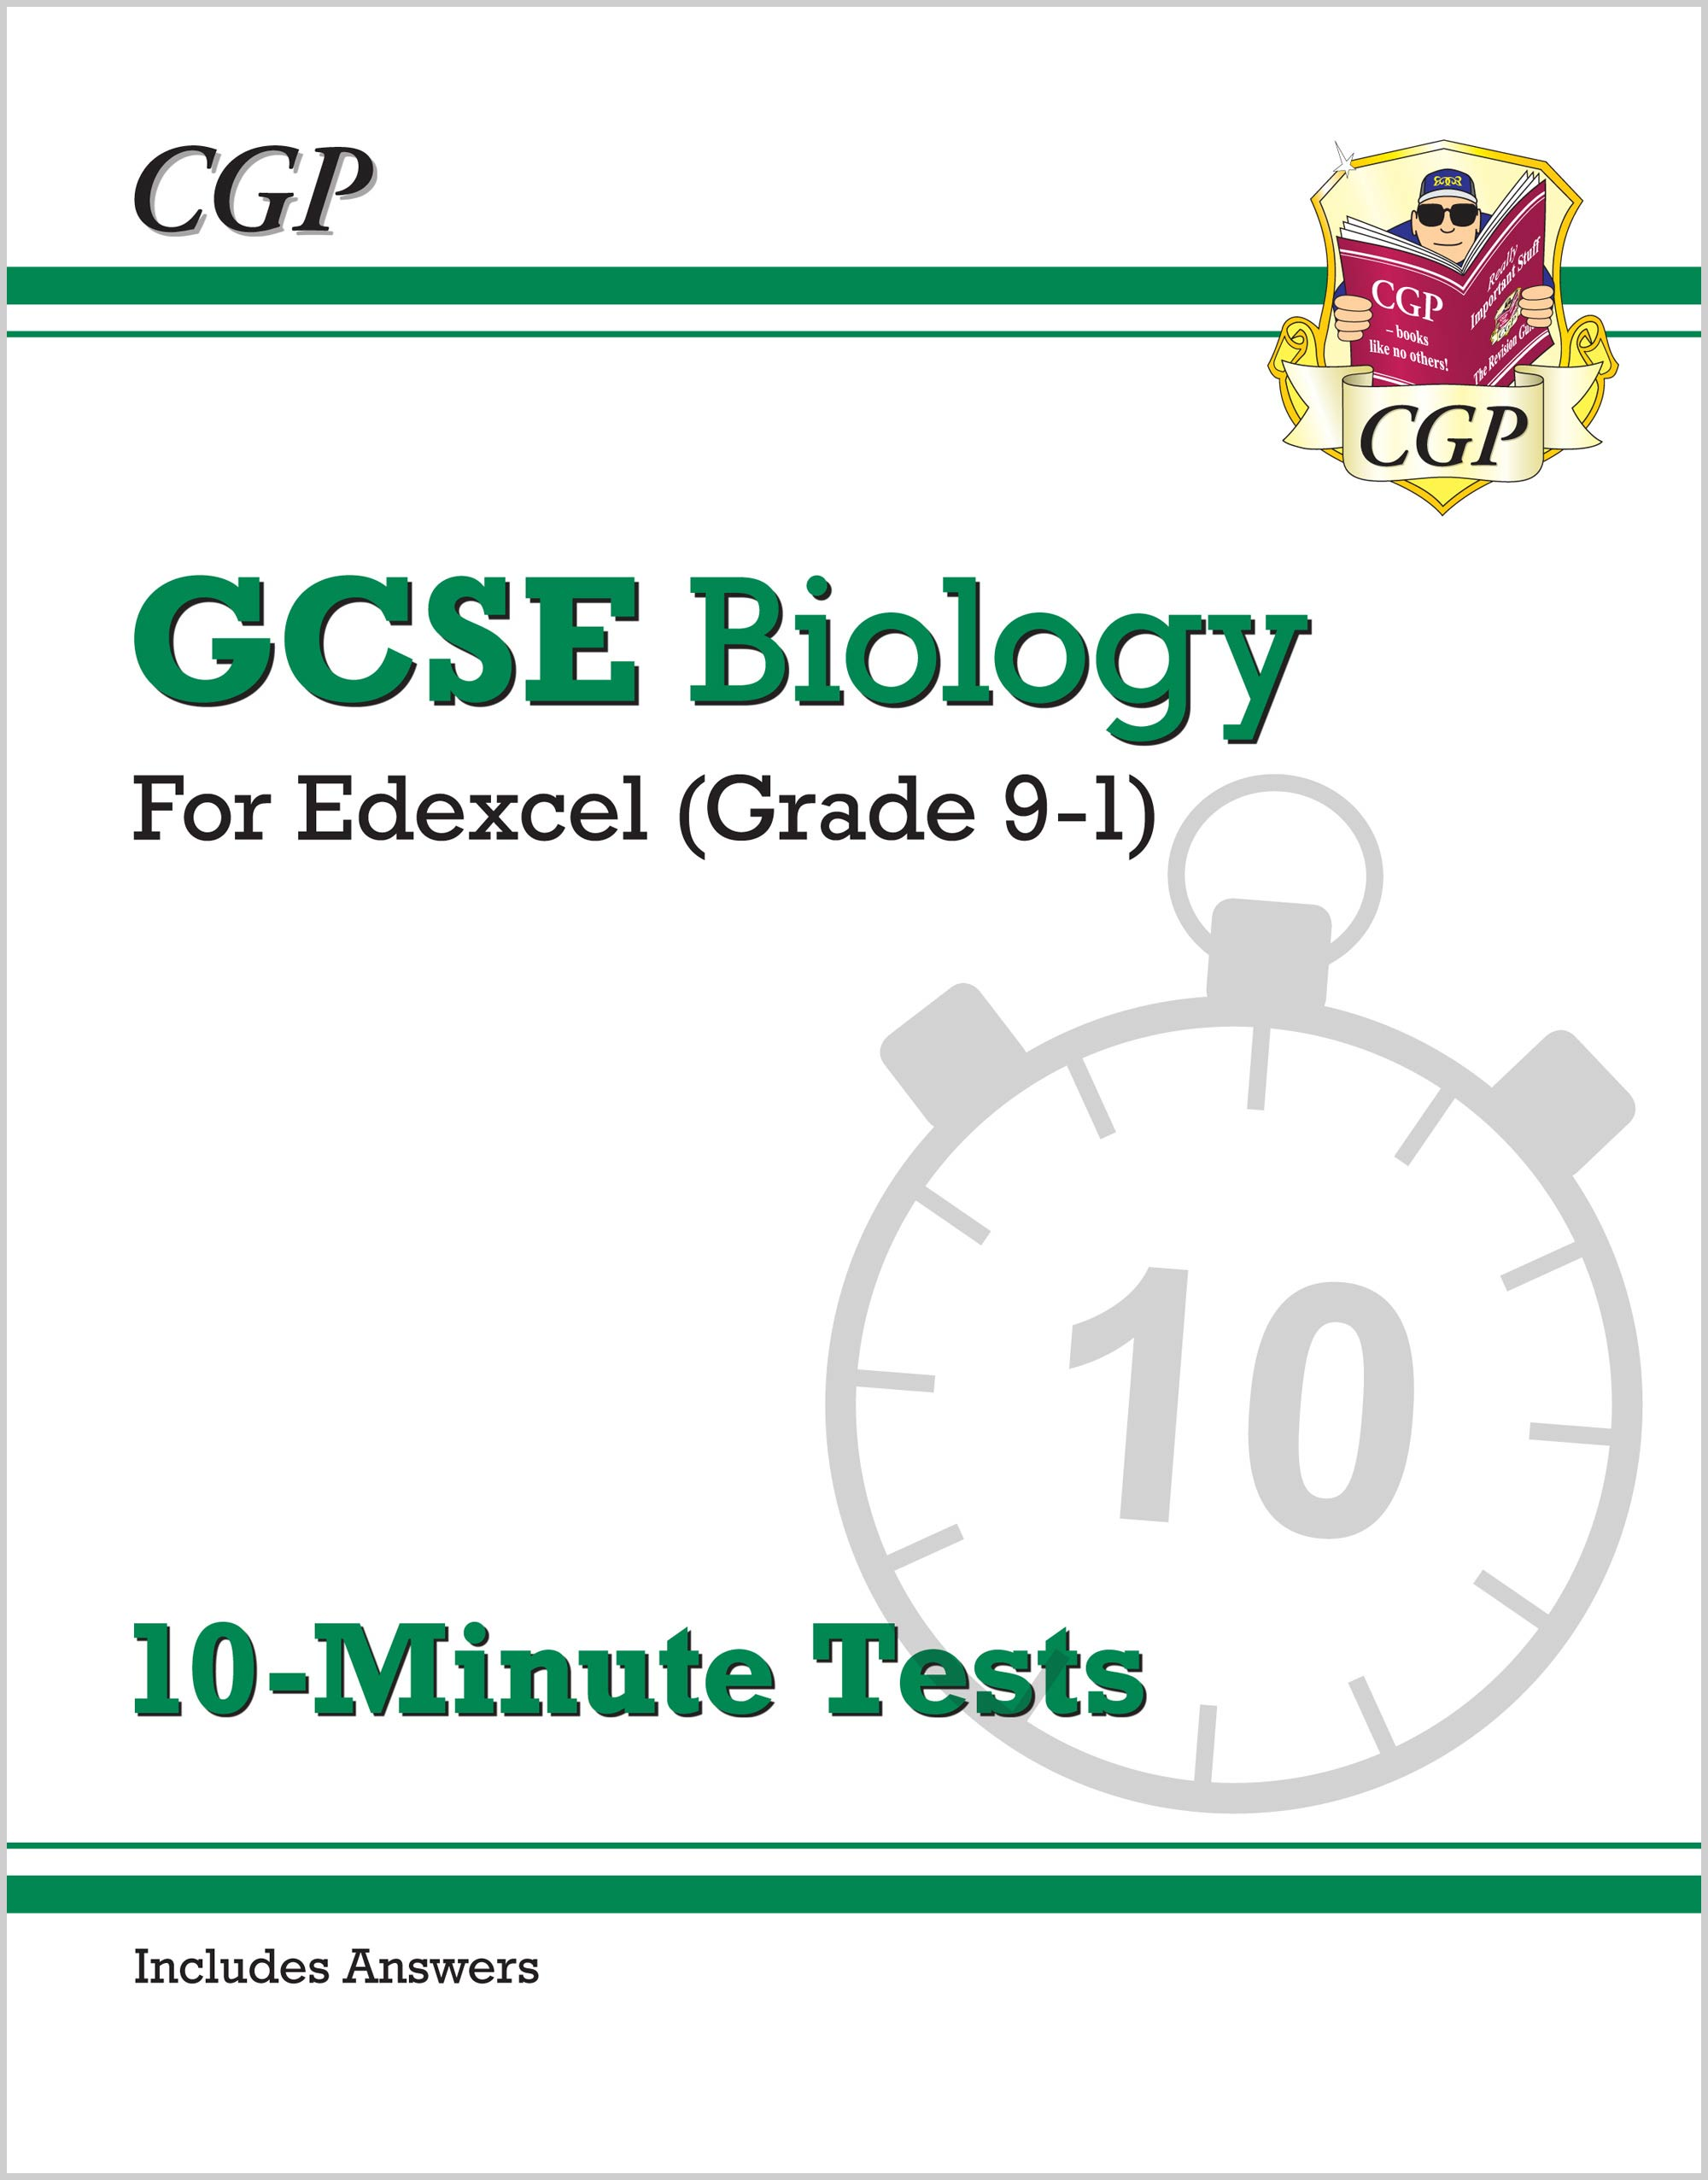 BEXP41 - Grade 9-1 GCSE Biology: Edexcel 10-Minute Tests (with answers)